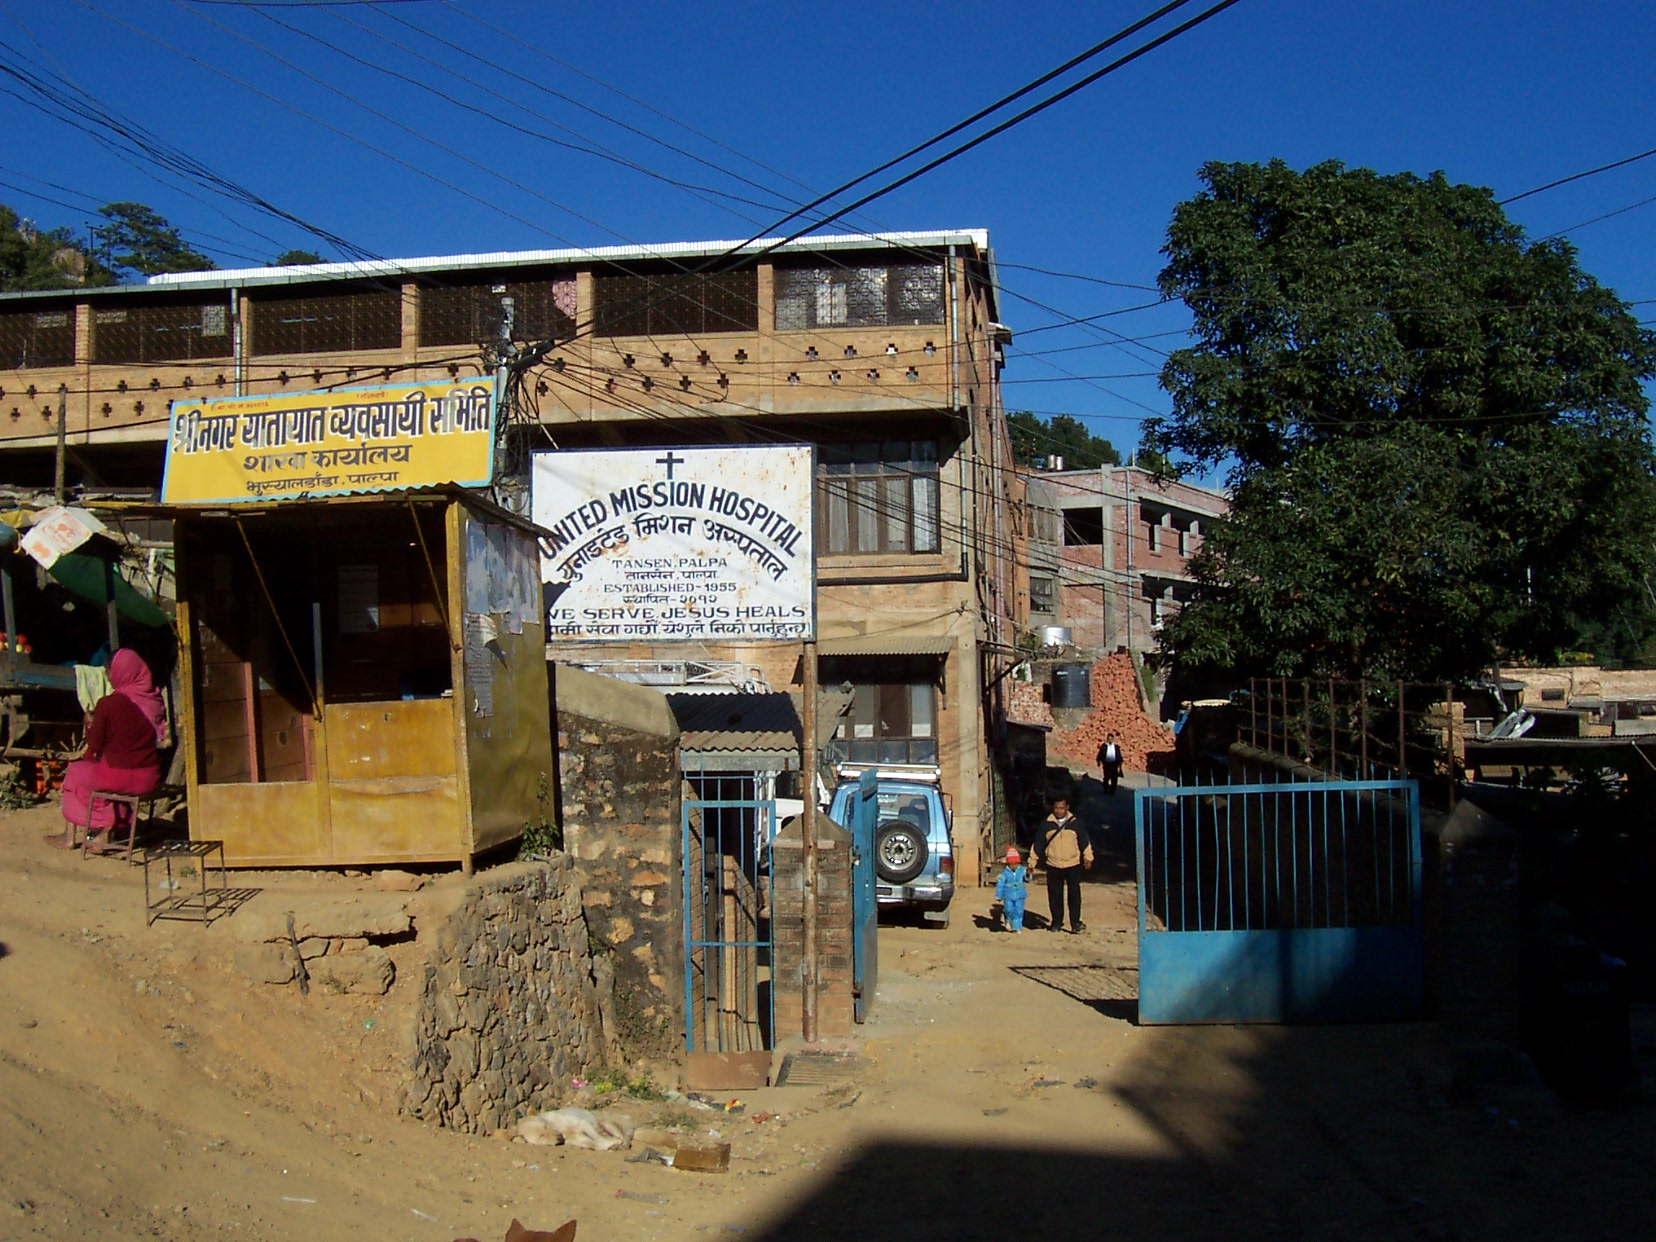 annet united mission hospital india asia building